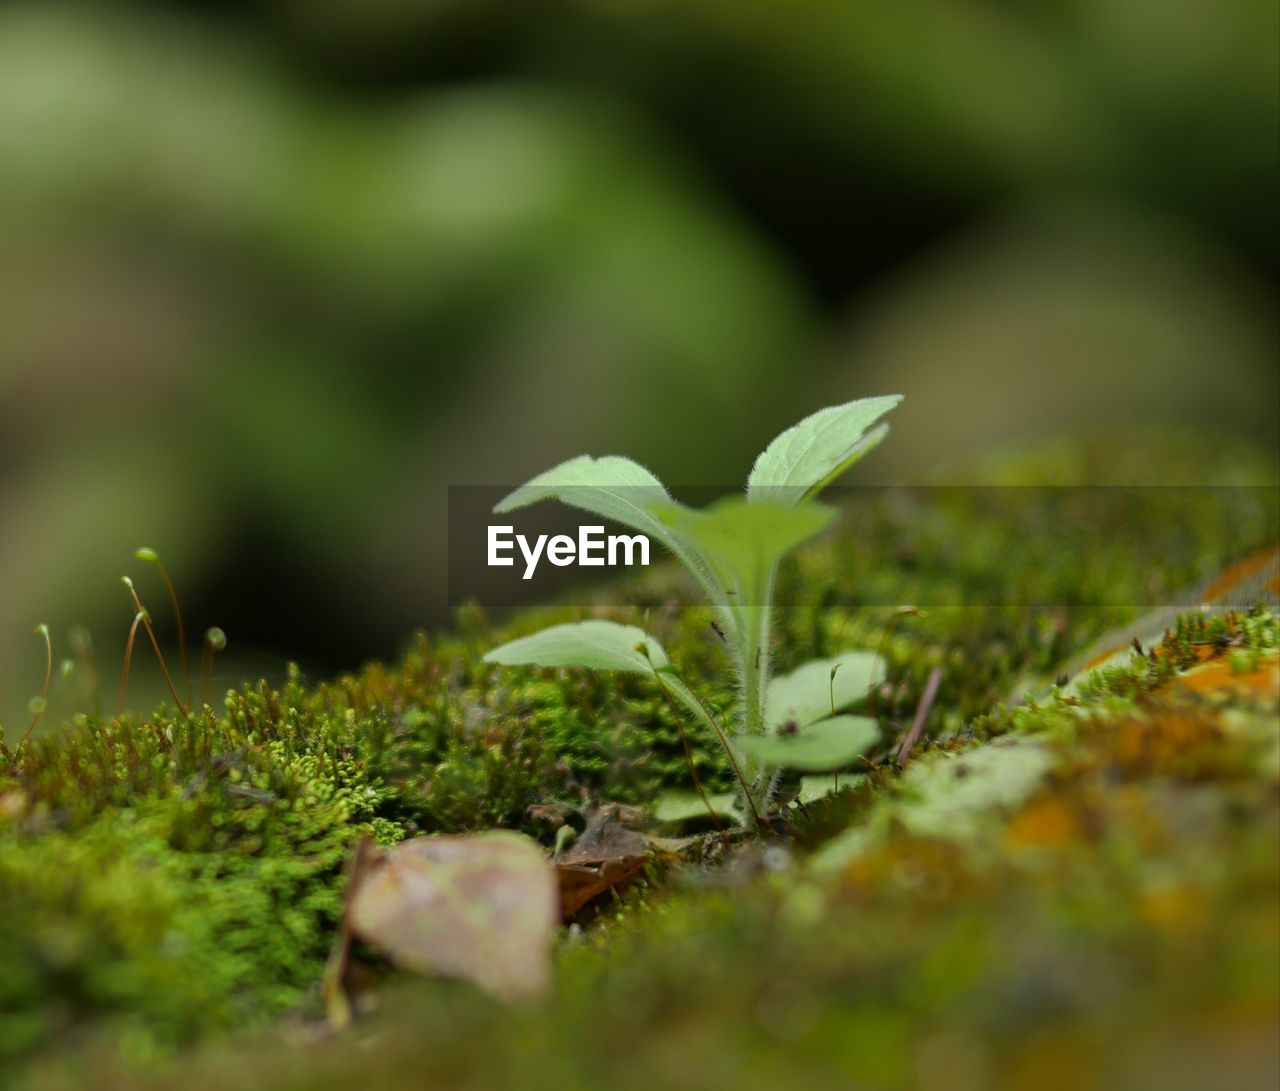 selective focus, growth, green color, leaf, plant part, plant, nature, close-up, beauty in nature, no people, day, seedling, beginnings, outdoors, land, field, vulnerability, new life, tranquility, fragility, small, surface level